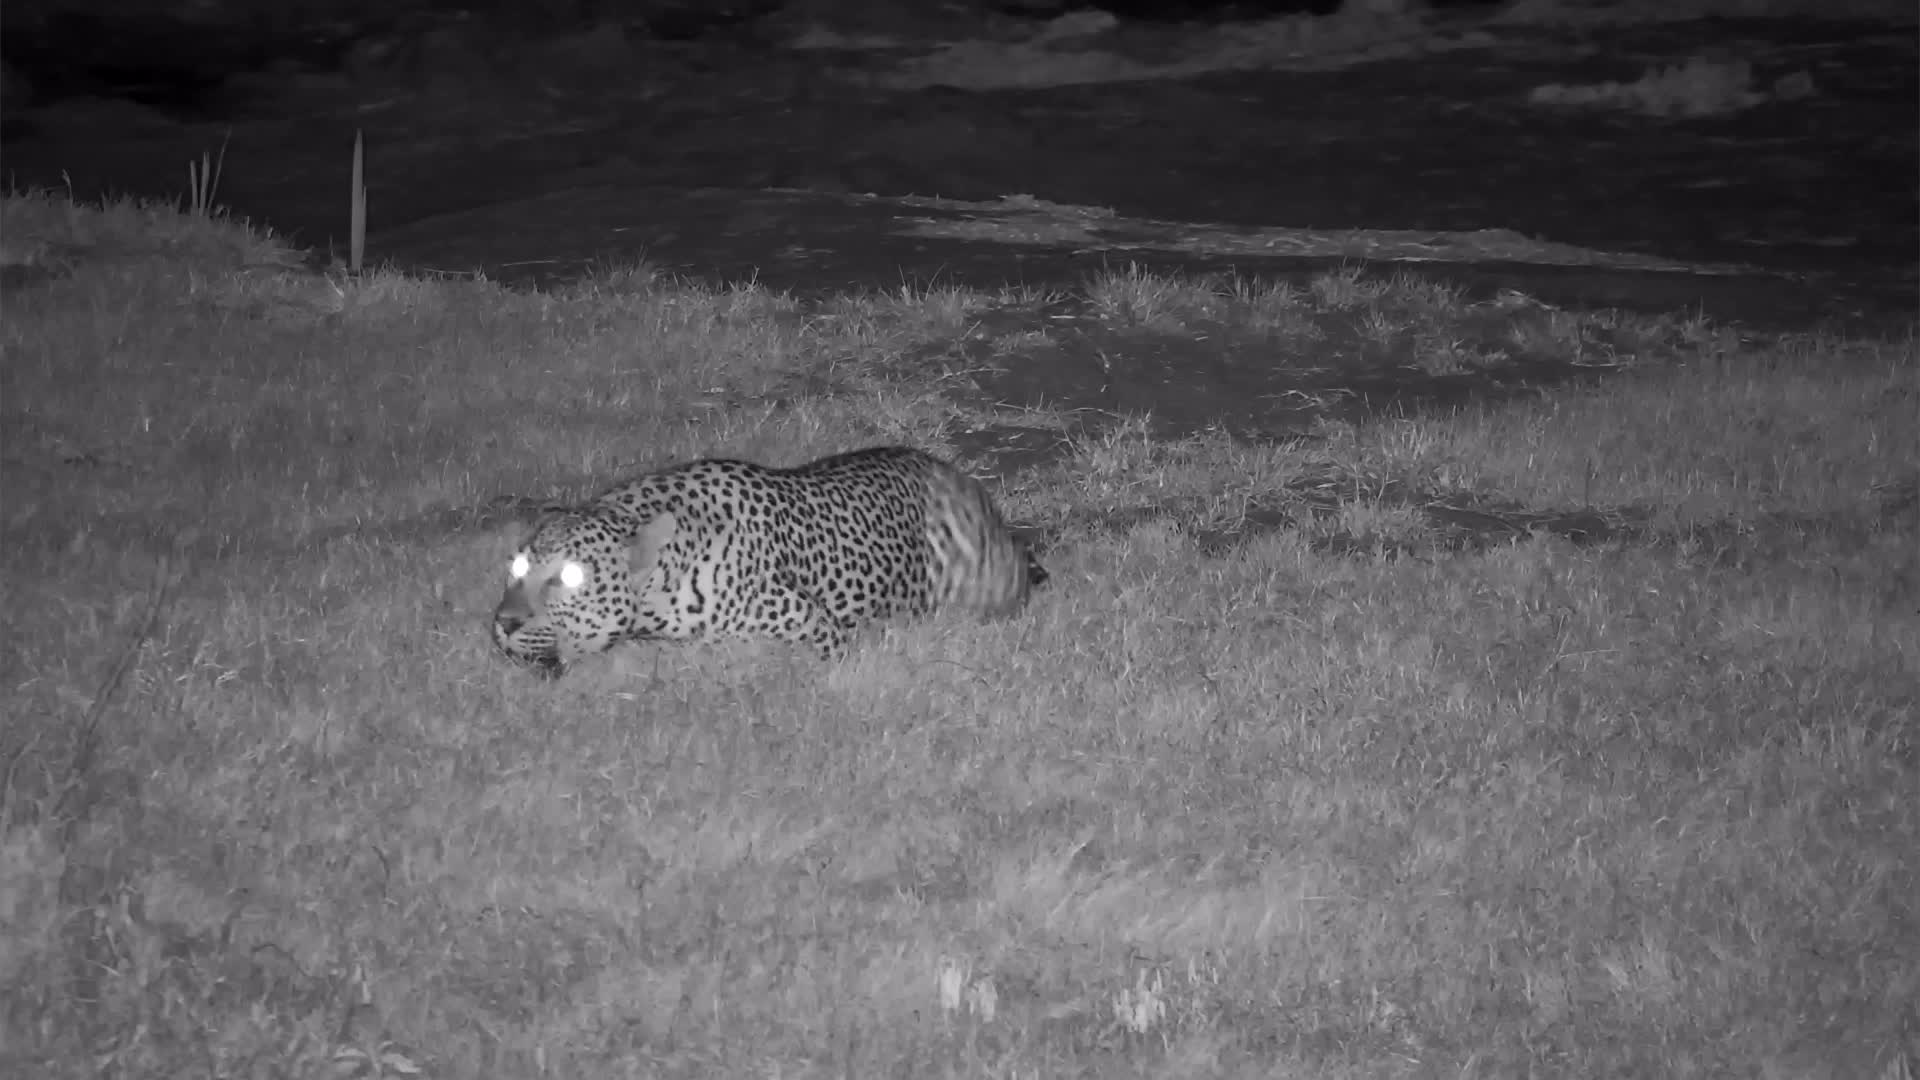 VIDEO: Male Leopard Chilling and Calling at the Waterhole